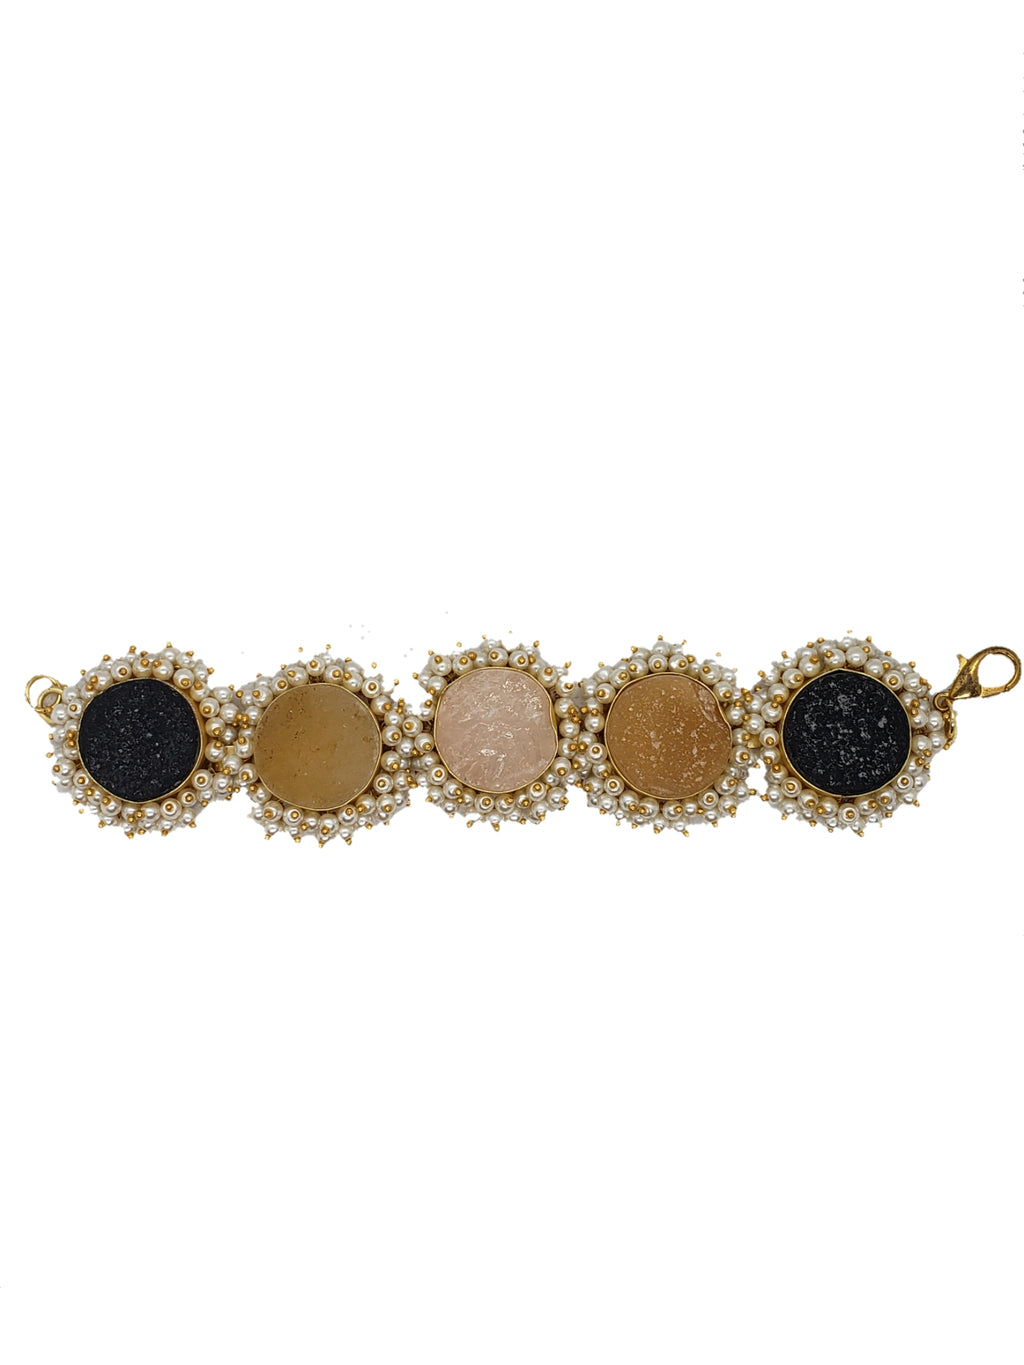 Obsidian and Citrine Bracelet - The Bauble Shop